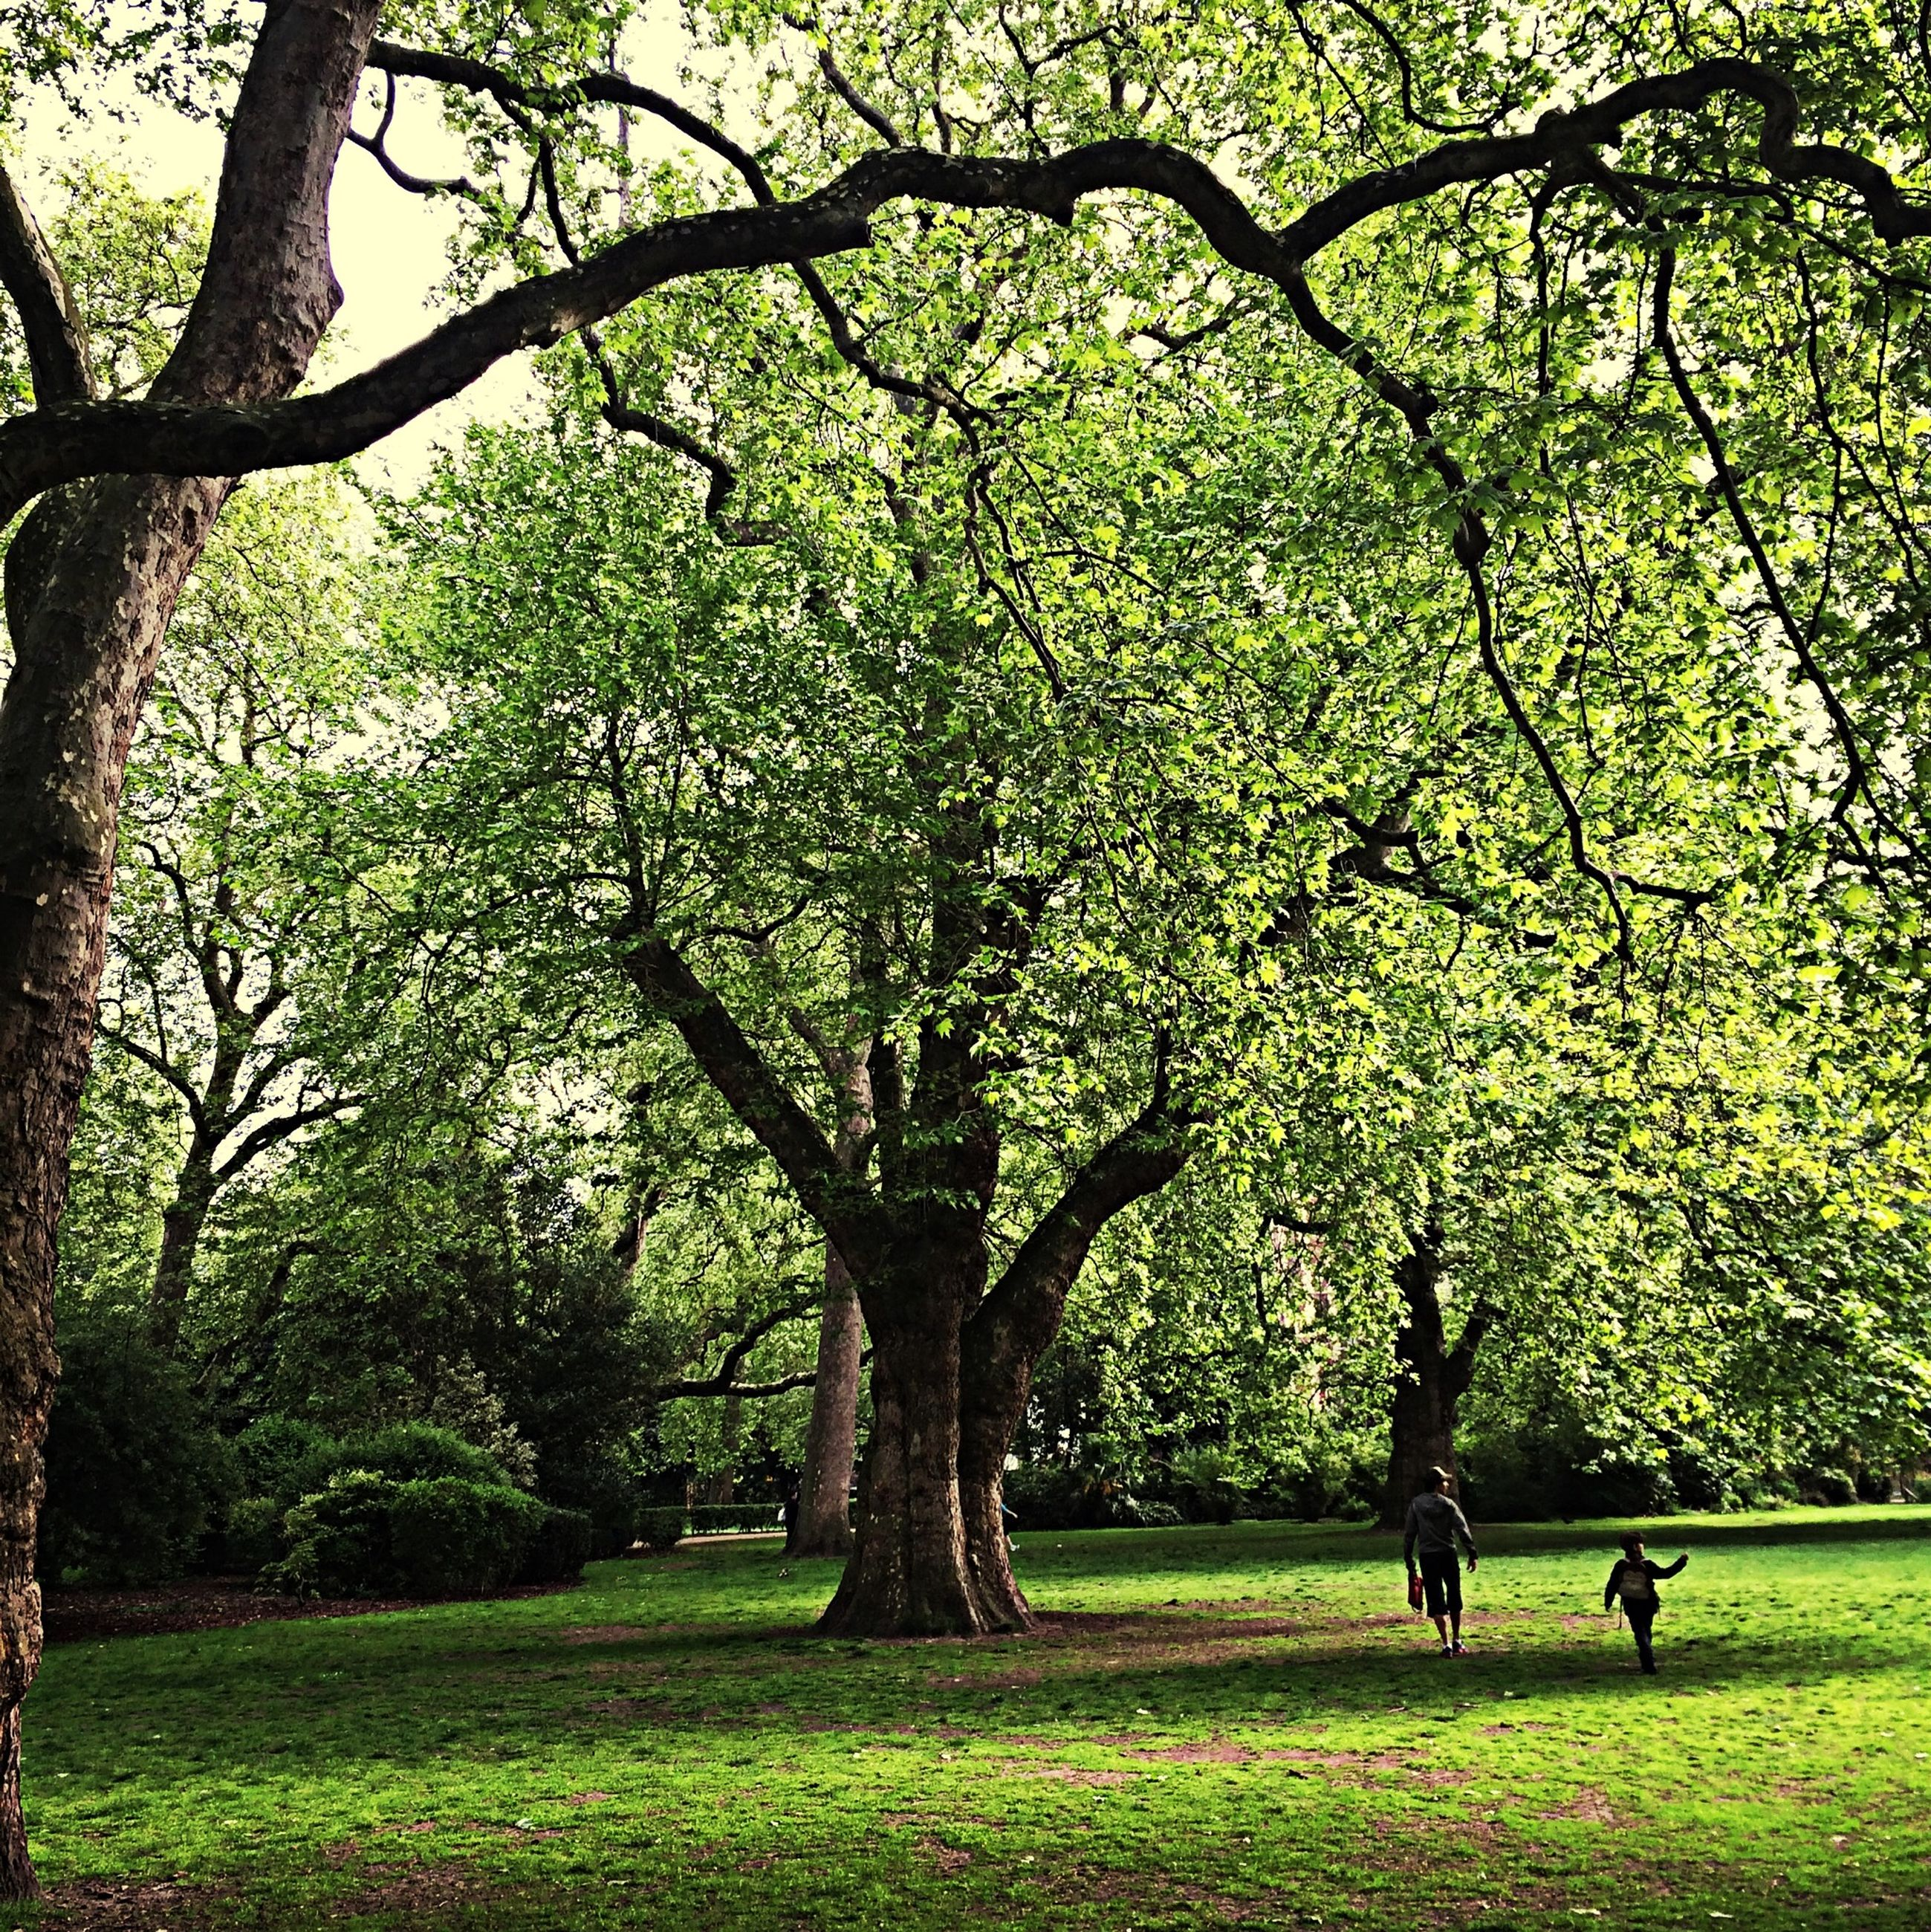 tree, grass, park - man made space, growth, branch, green color, leisure activity, men, nature, person, park, beauty in nature, tranquility, lifestyles, tranquil scene, sunlight, scenics, field, flower